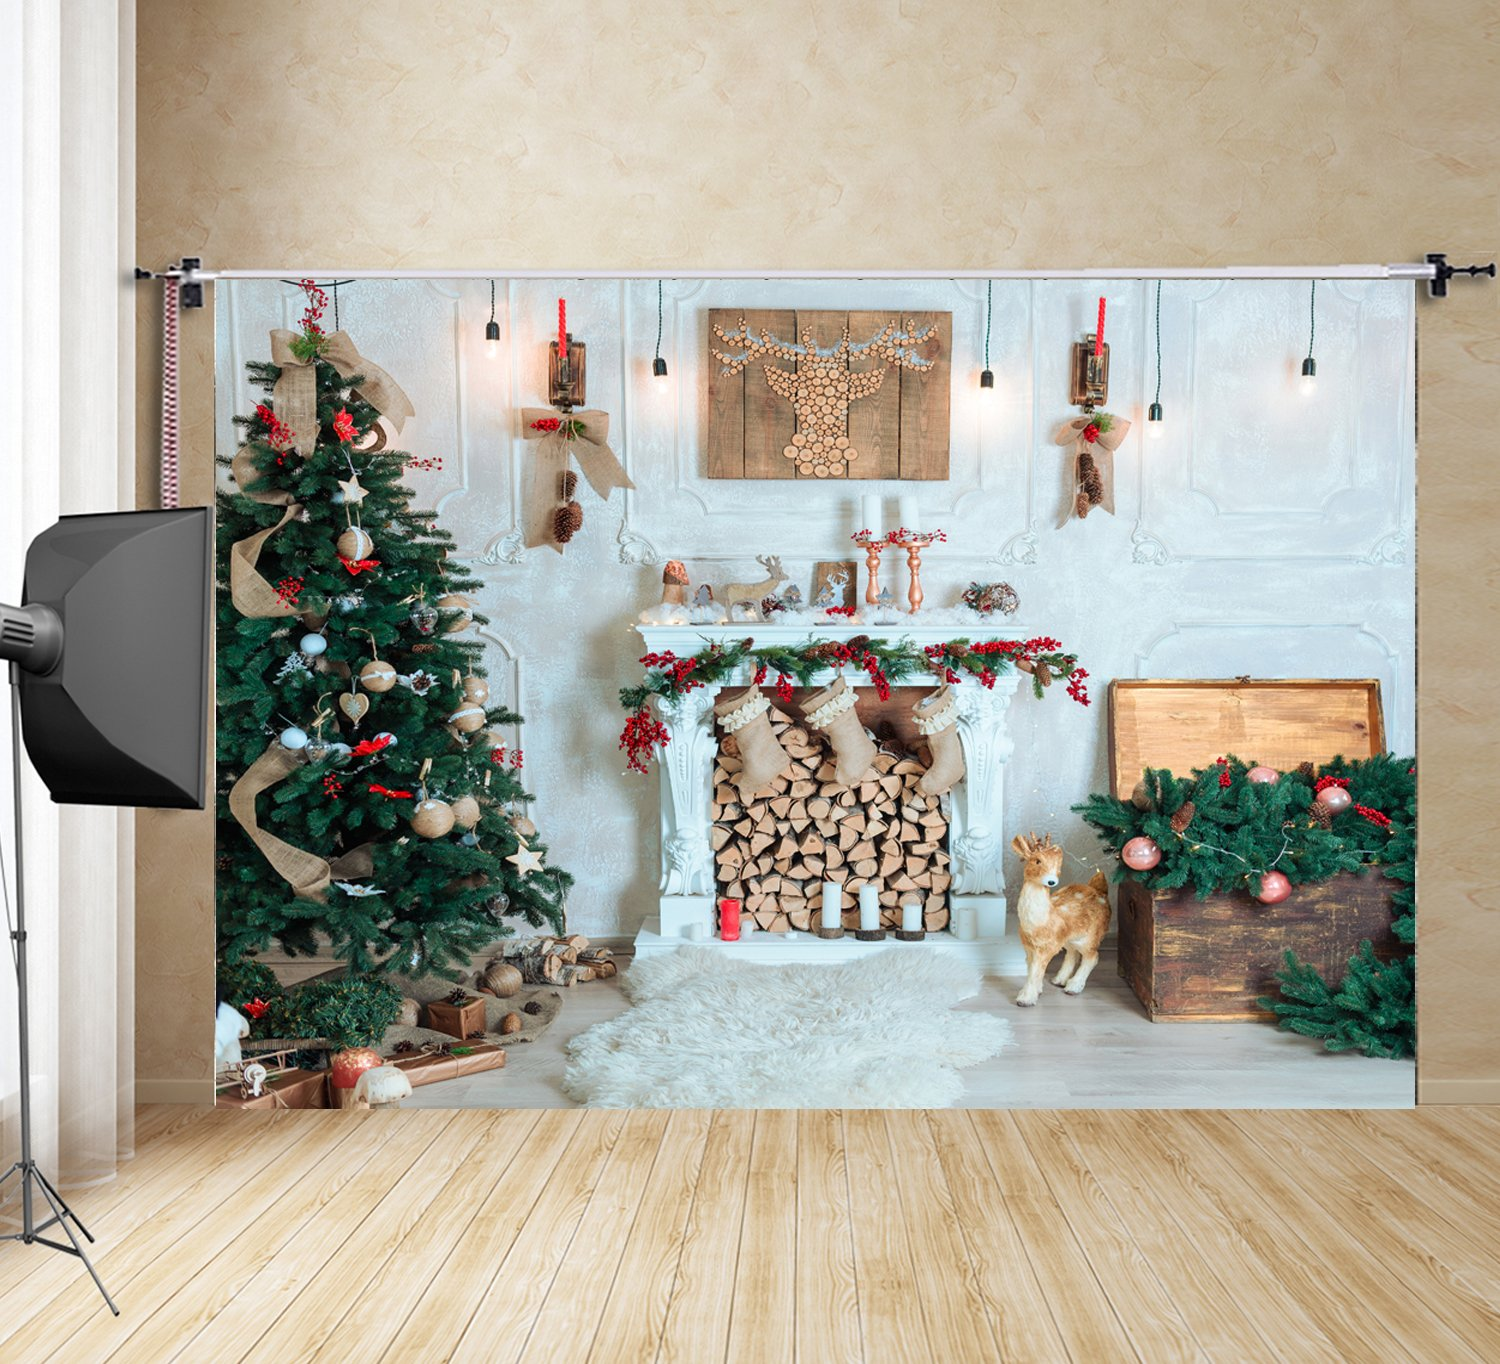 3d Christmas Tree And Fireplace Studio Photography Backdrop Home Family Pictures Diy Background Ft6875